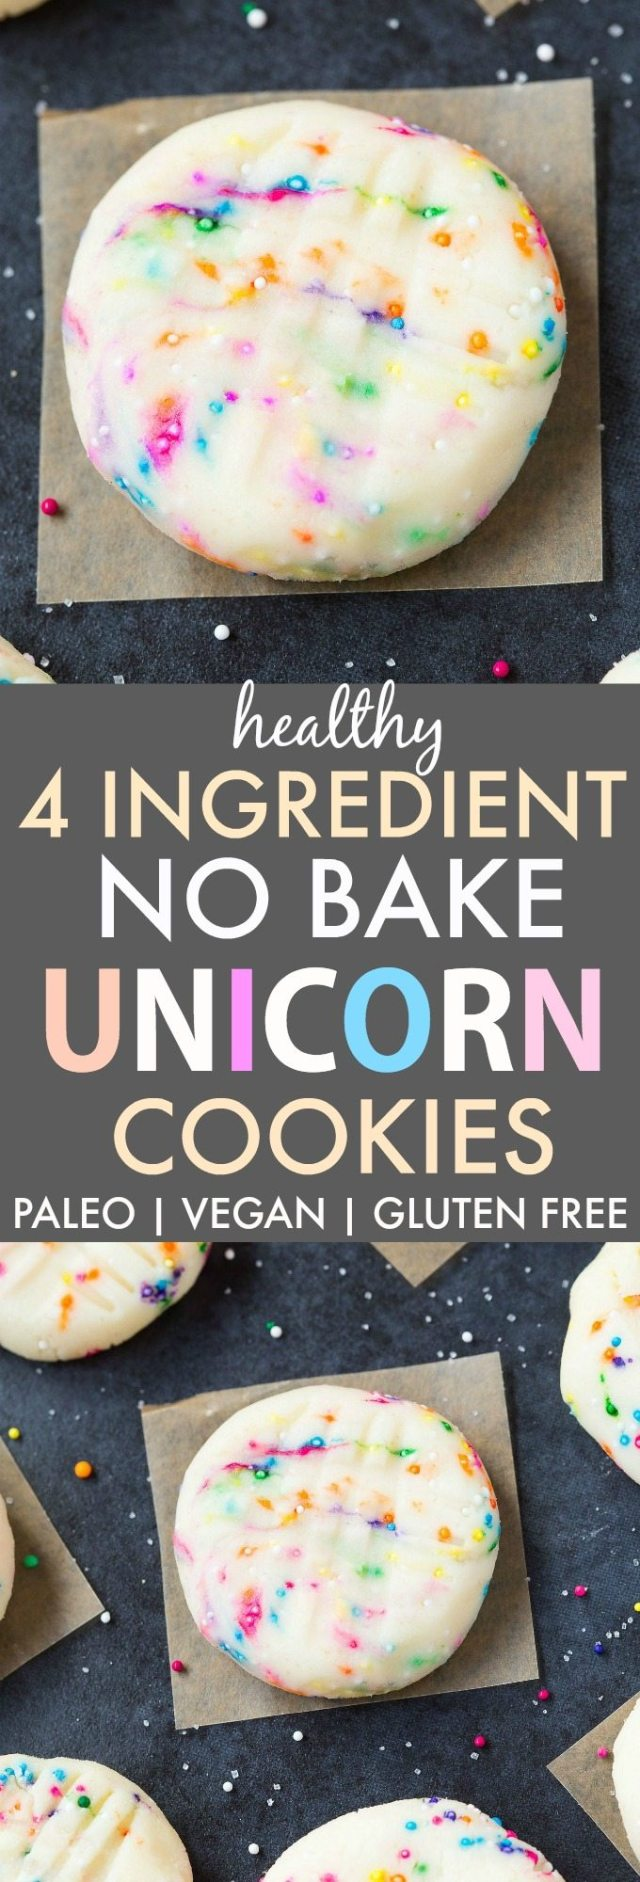 4-ingredient-no-bake-unicorn-cookies-5